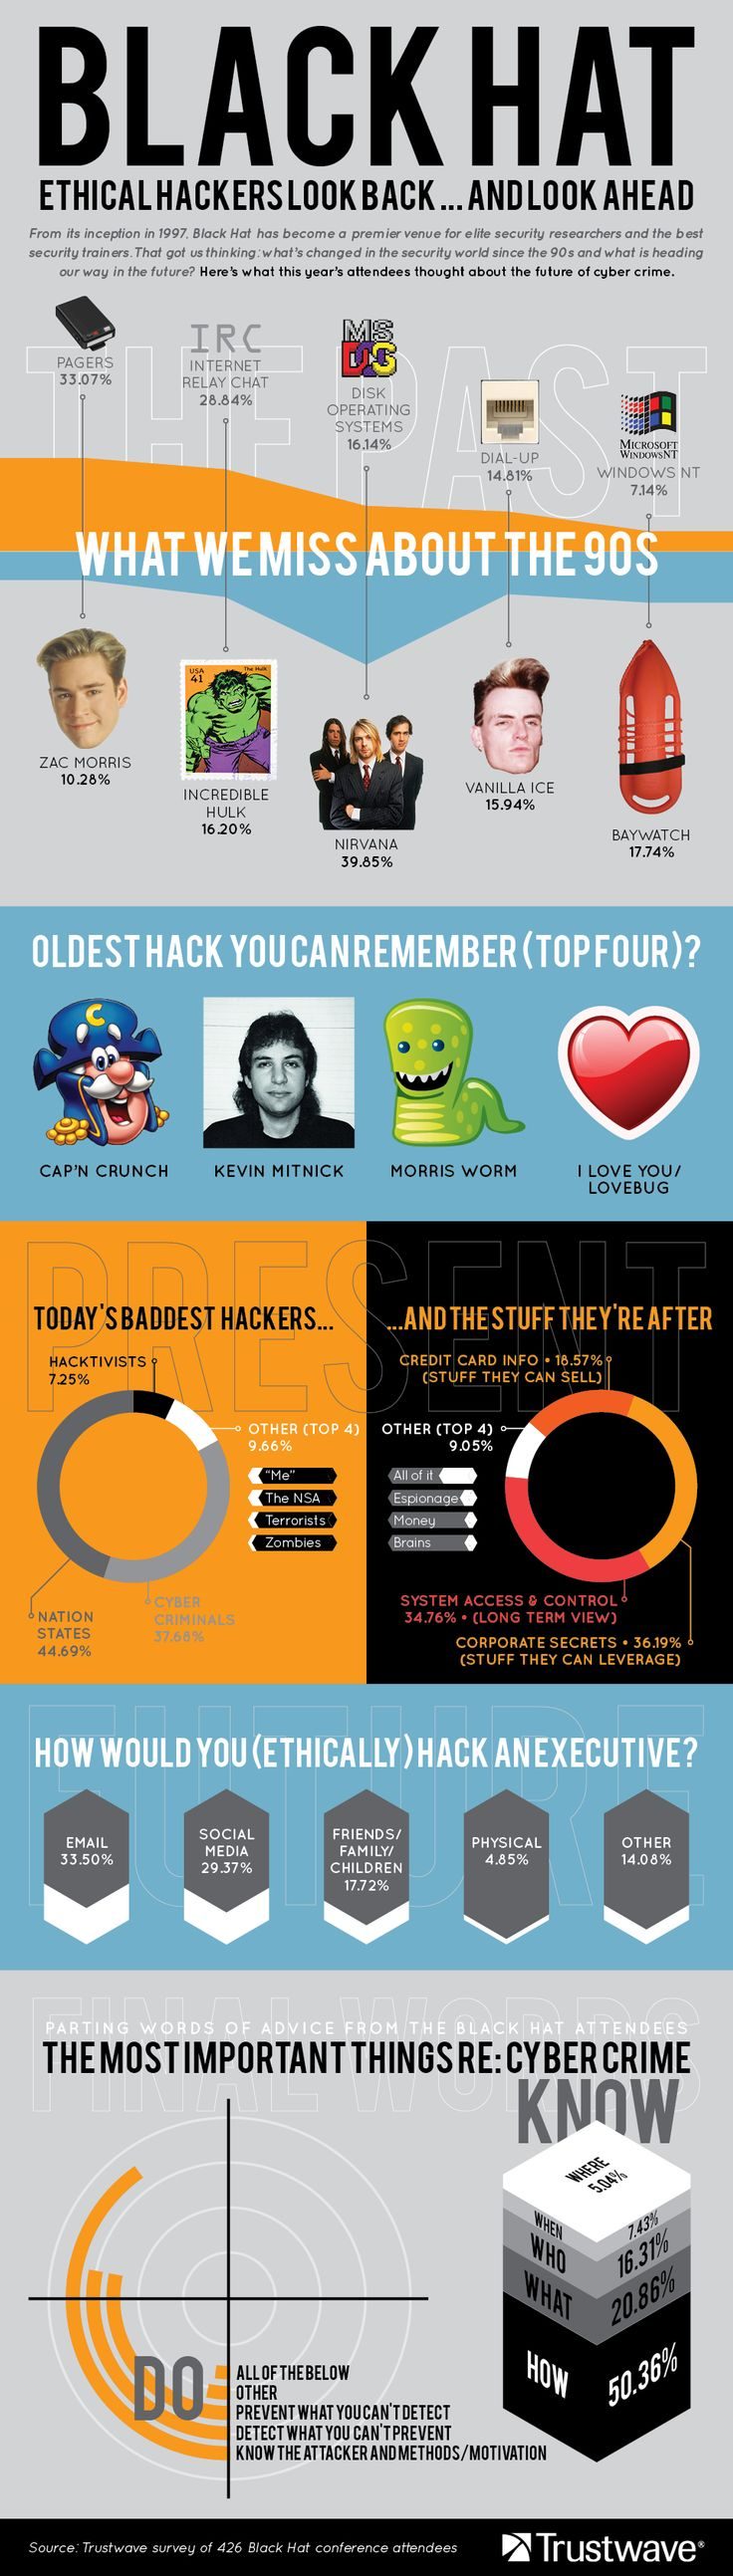 best images about hacking technology anonymous infographic ethical hackers look back and look ahead in